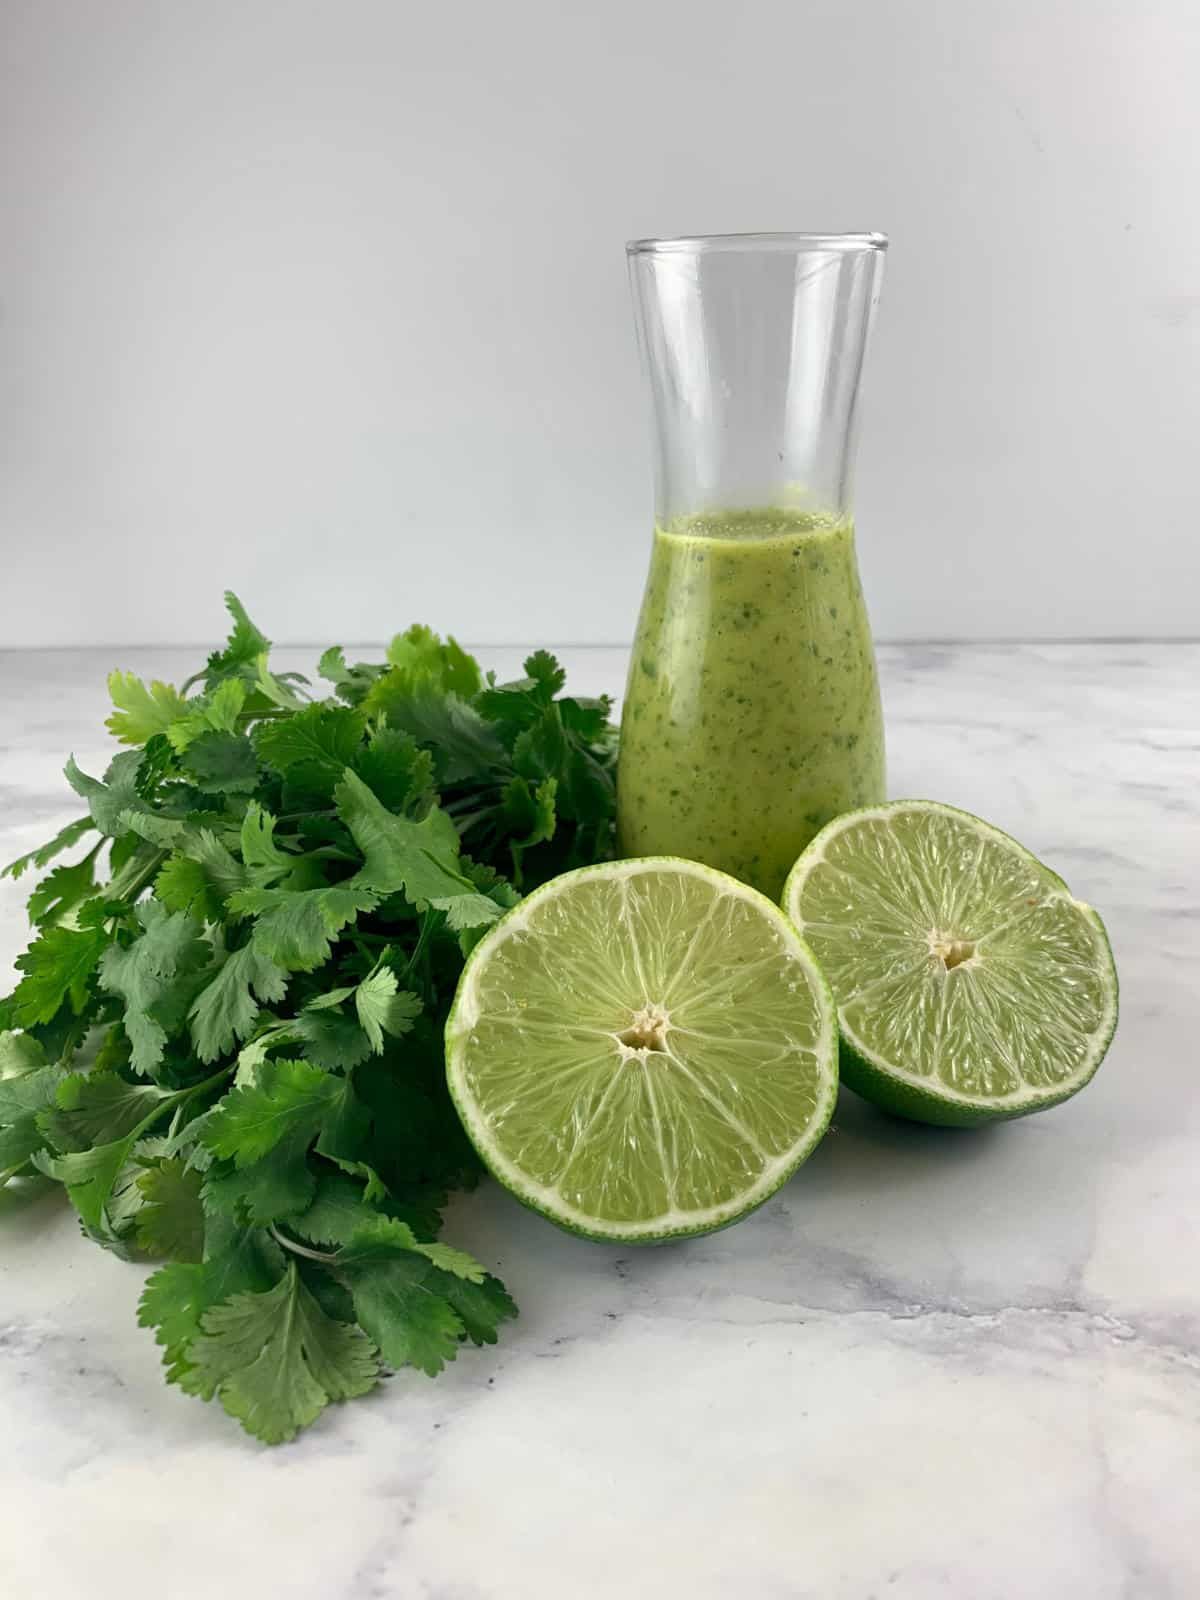 CILANTRO LIME DRESSING IN A GLASS. BOTTLE WITH CILANTRO AND CUT LIMES